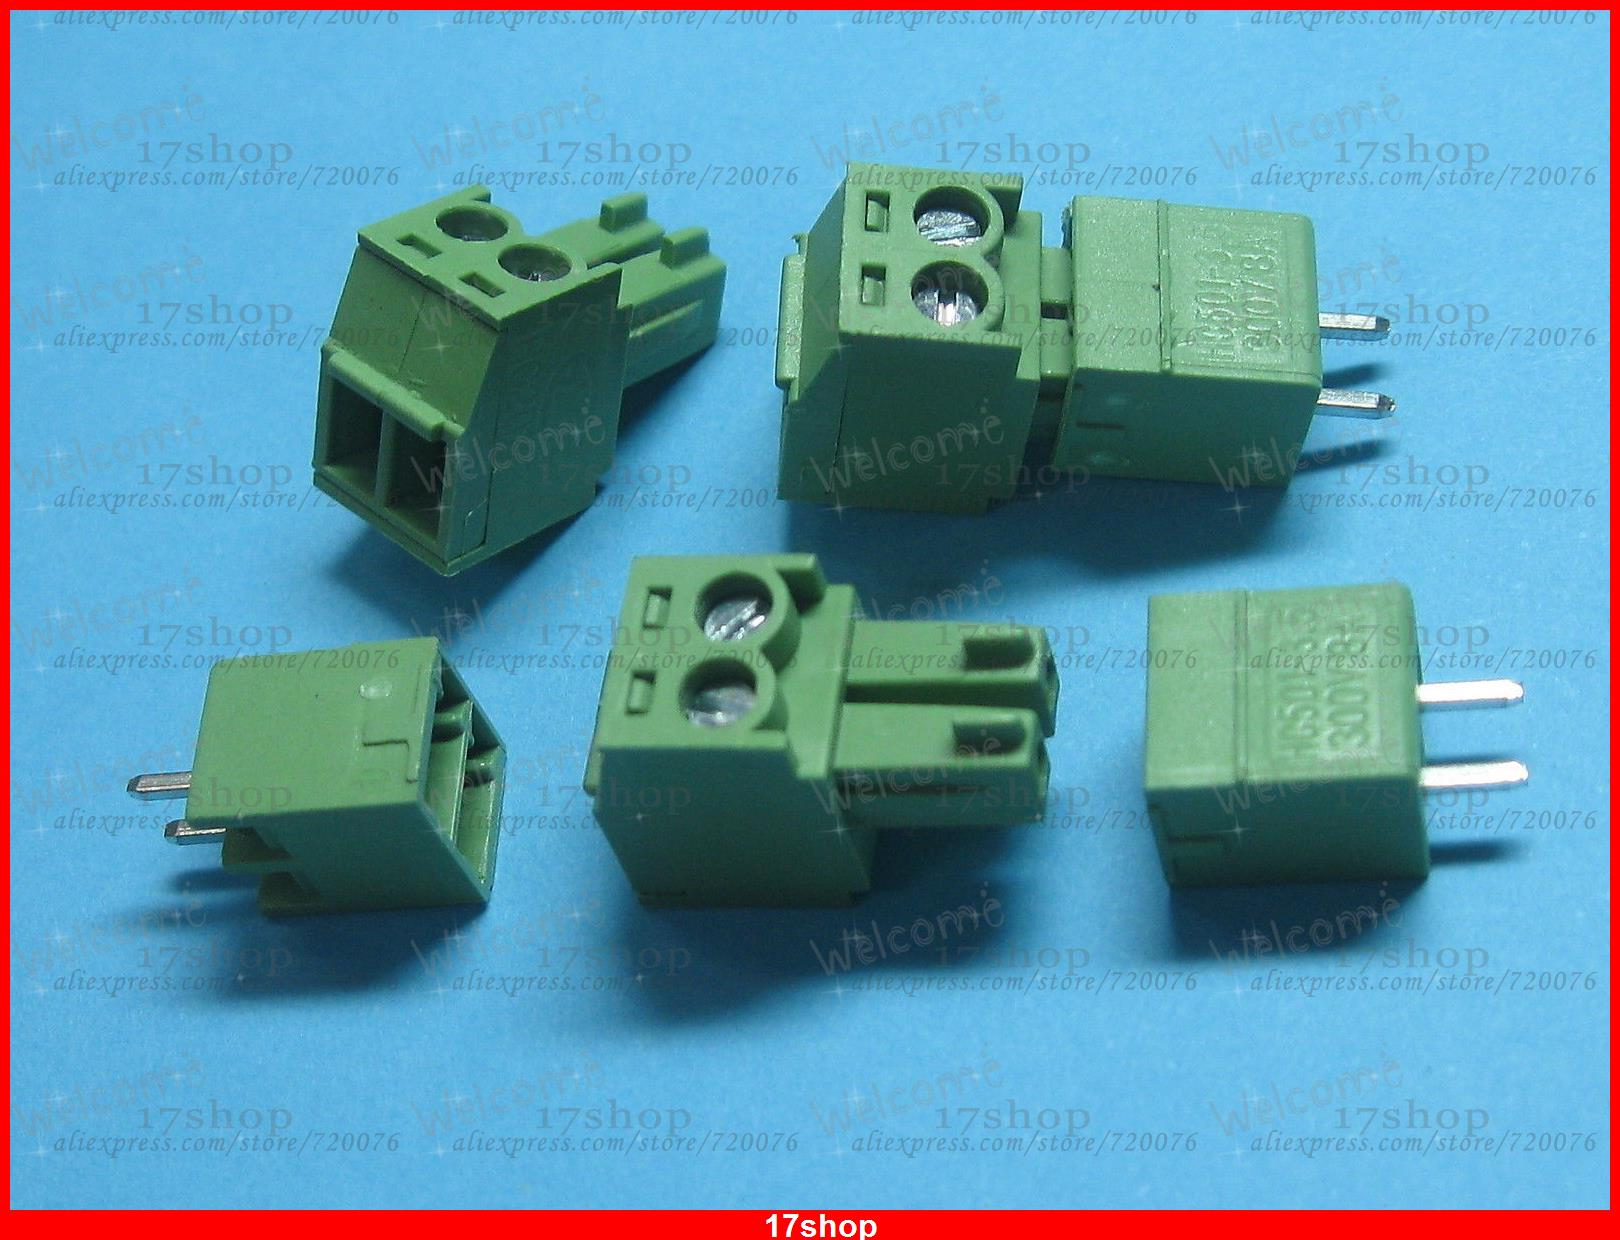 200 x Pitch 3.81mm 2way/pin Screw Terminal Block Connector Green Pluggable Type 30 pcs screw terminal block connector 3 81mm 12 pin green pluggable type